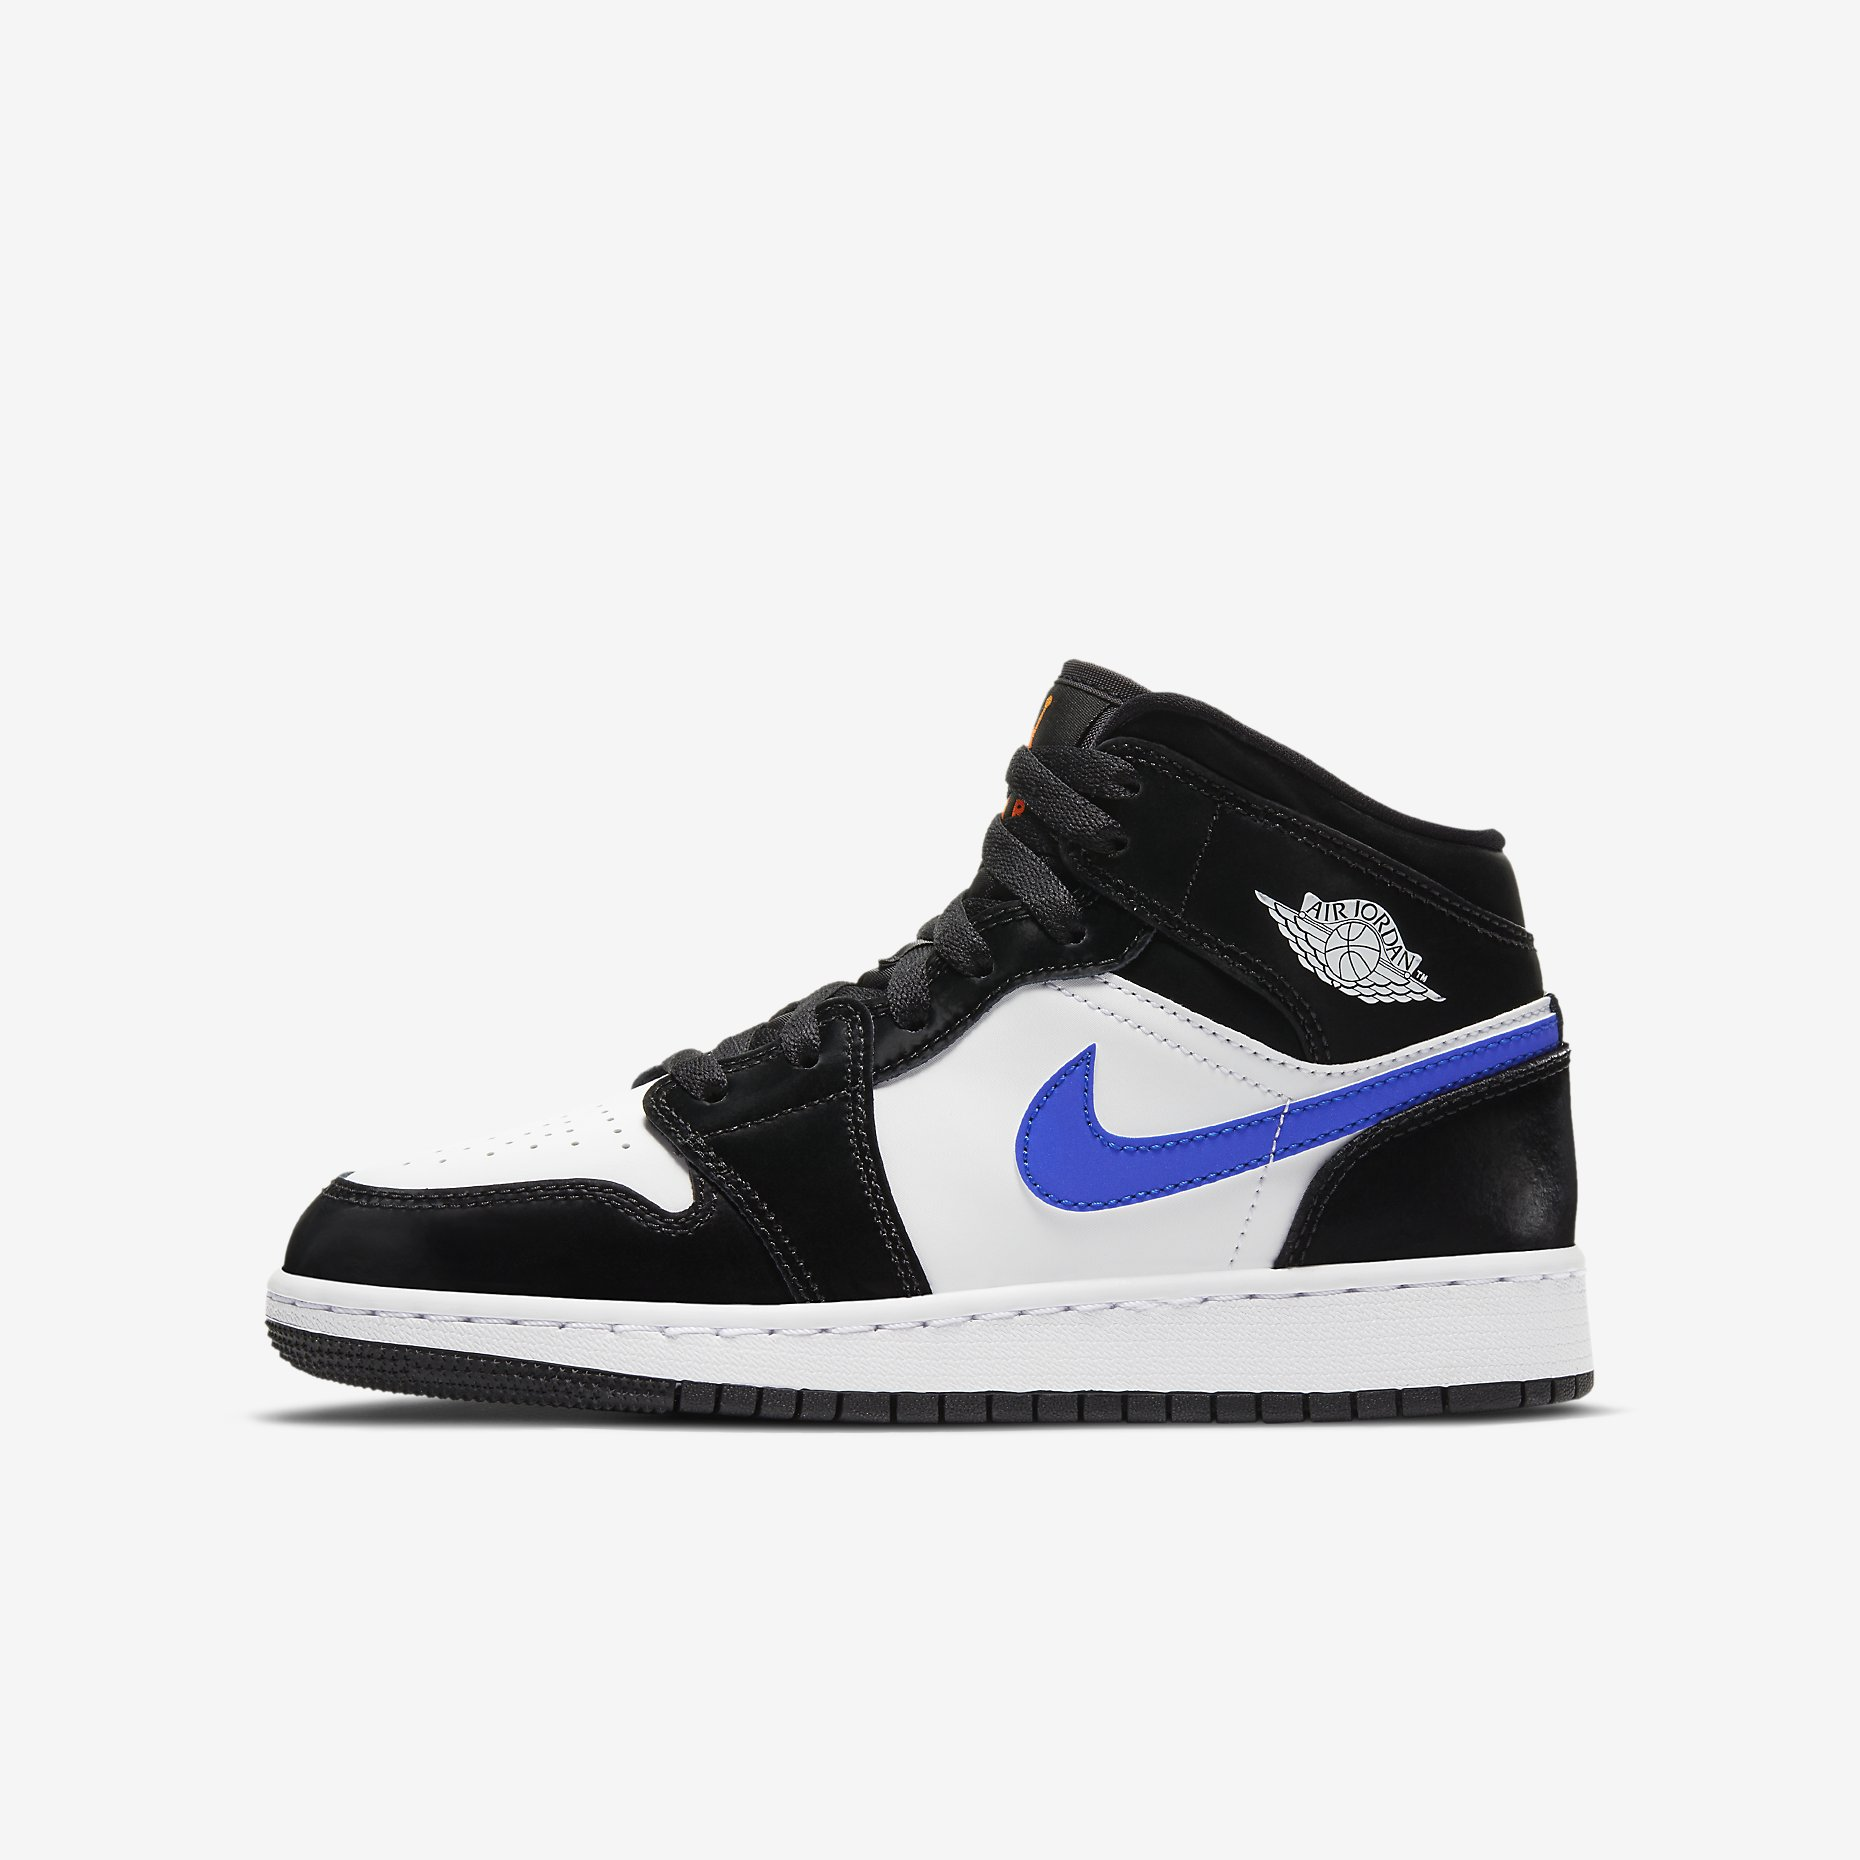 Air Jordan 1 Mid GS 'Black/Racer Blue/White'}